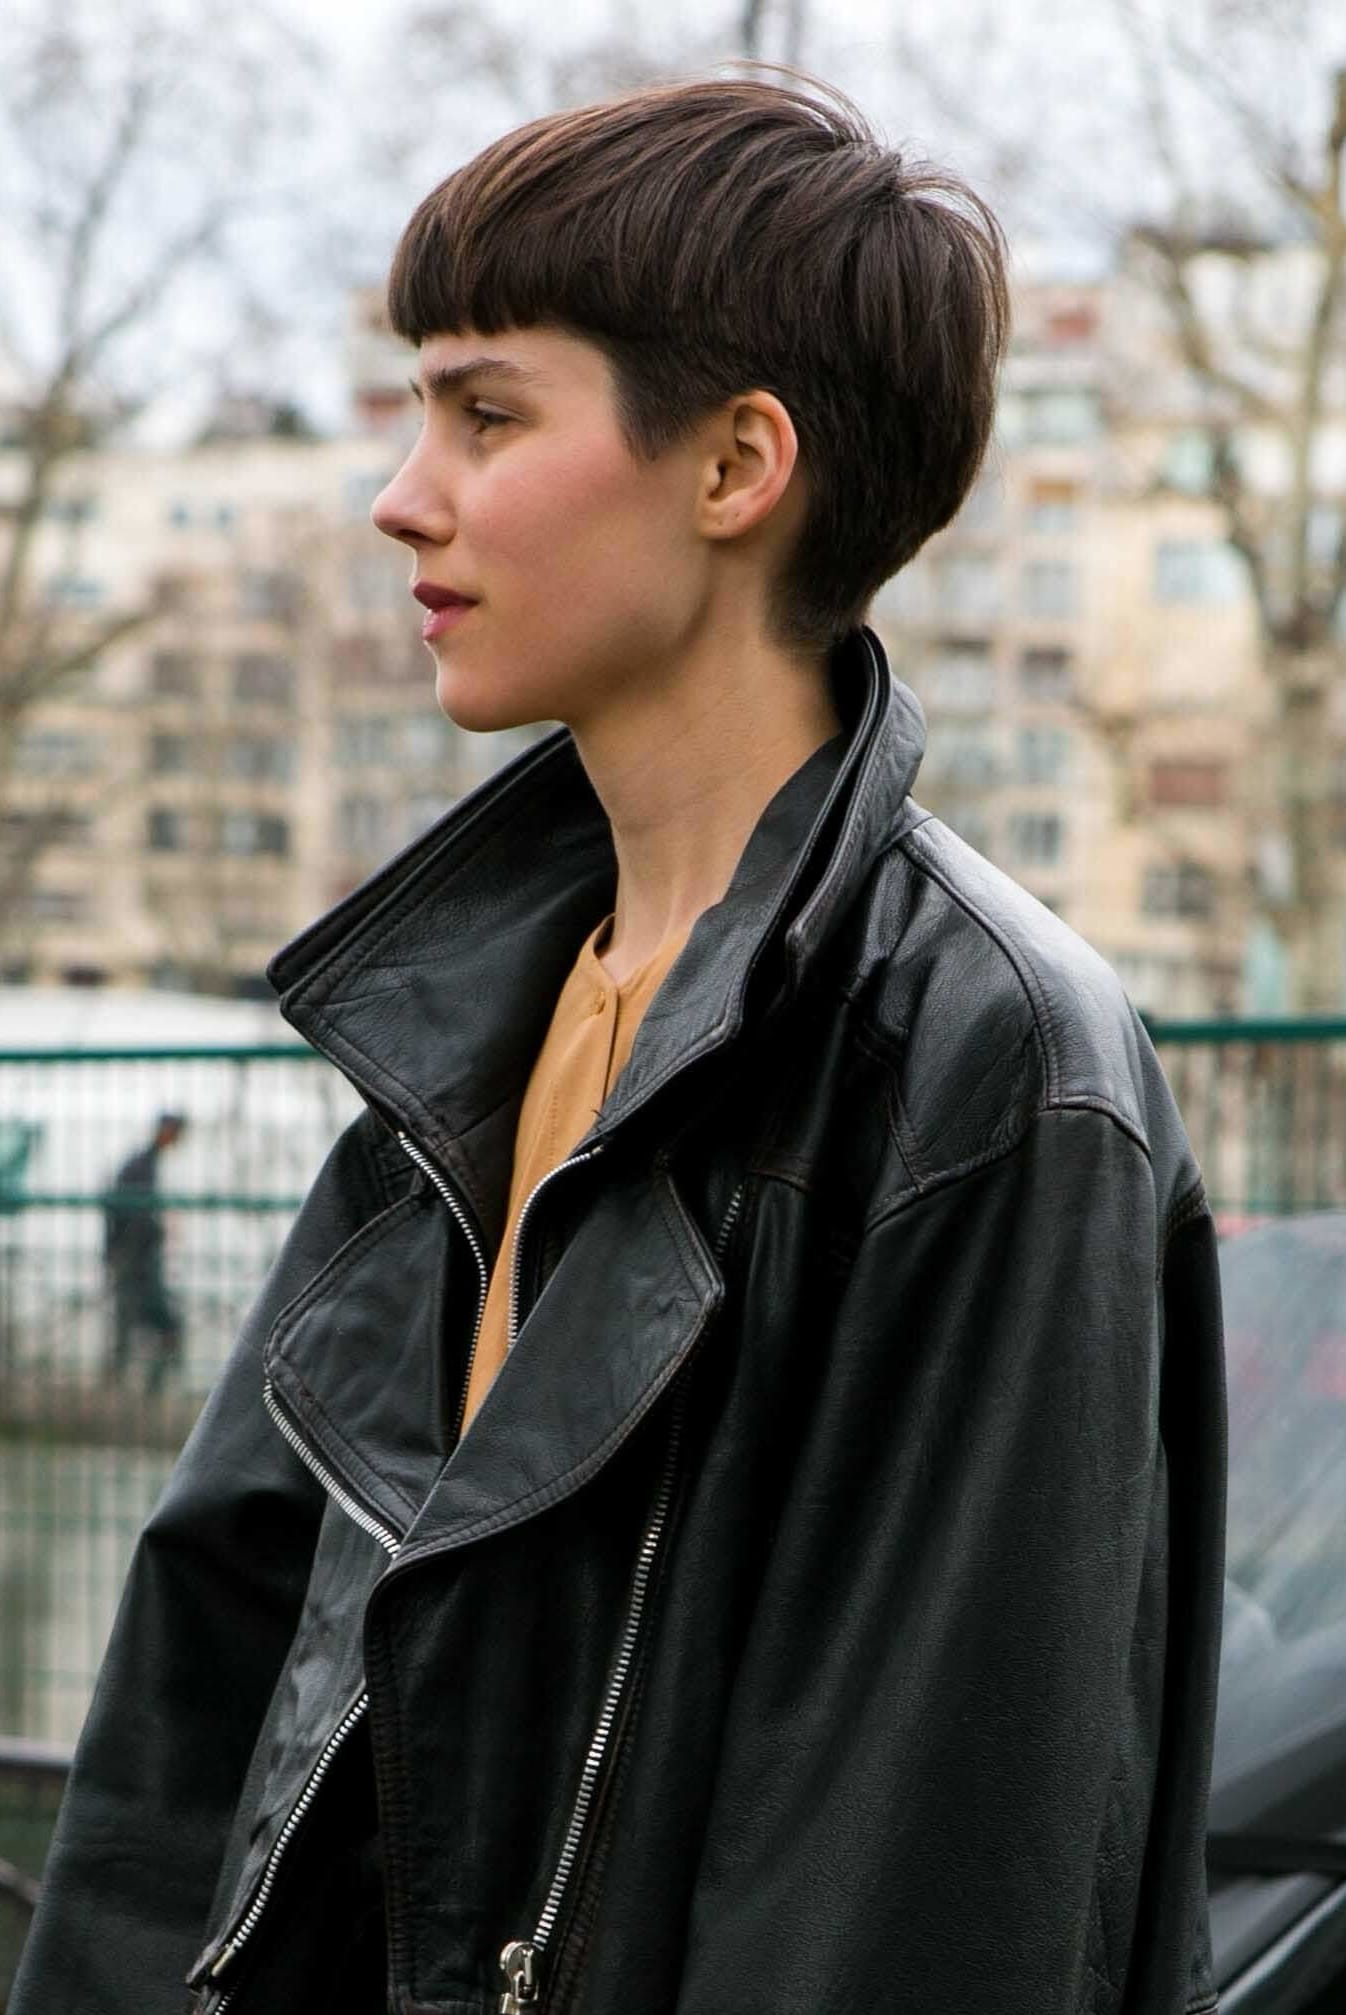 Would I suit short hair? Should I cut my long hair? Brunette with bowl short haircut wearing a biker jacket